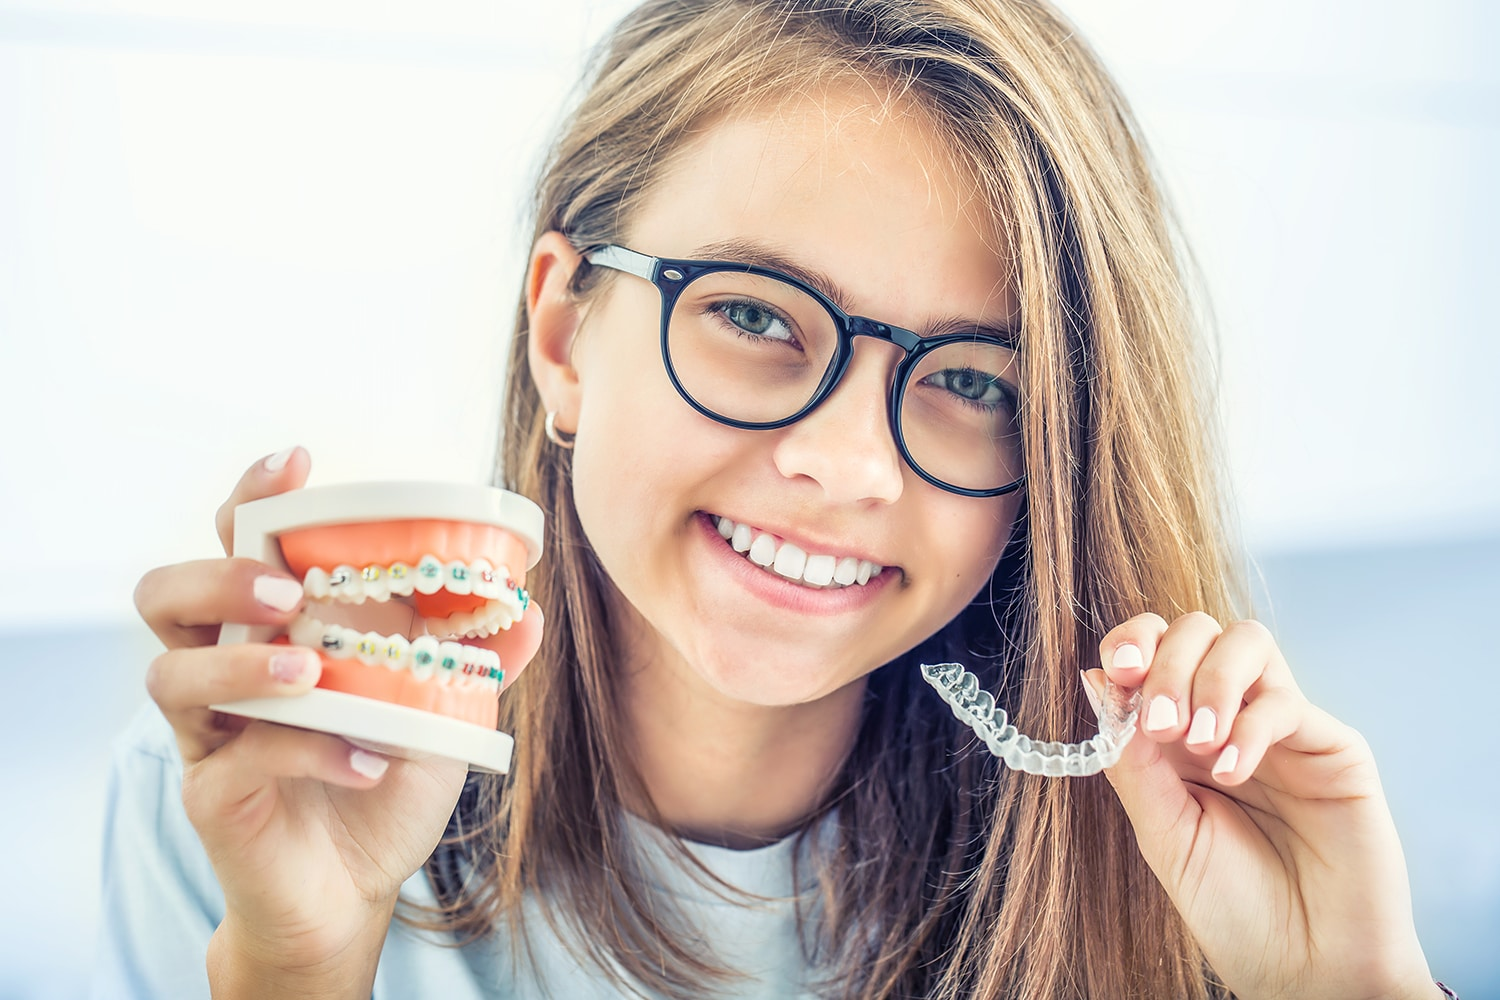 invisible braces held by young smiling girl